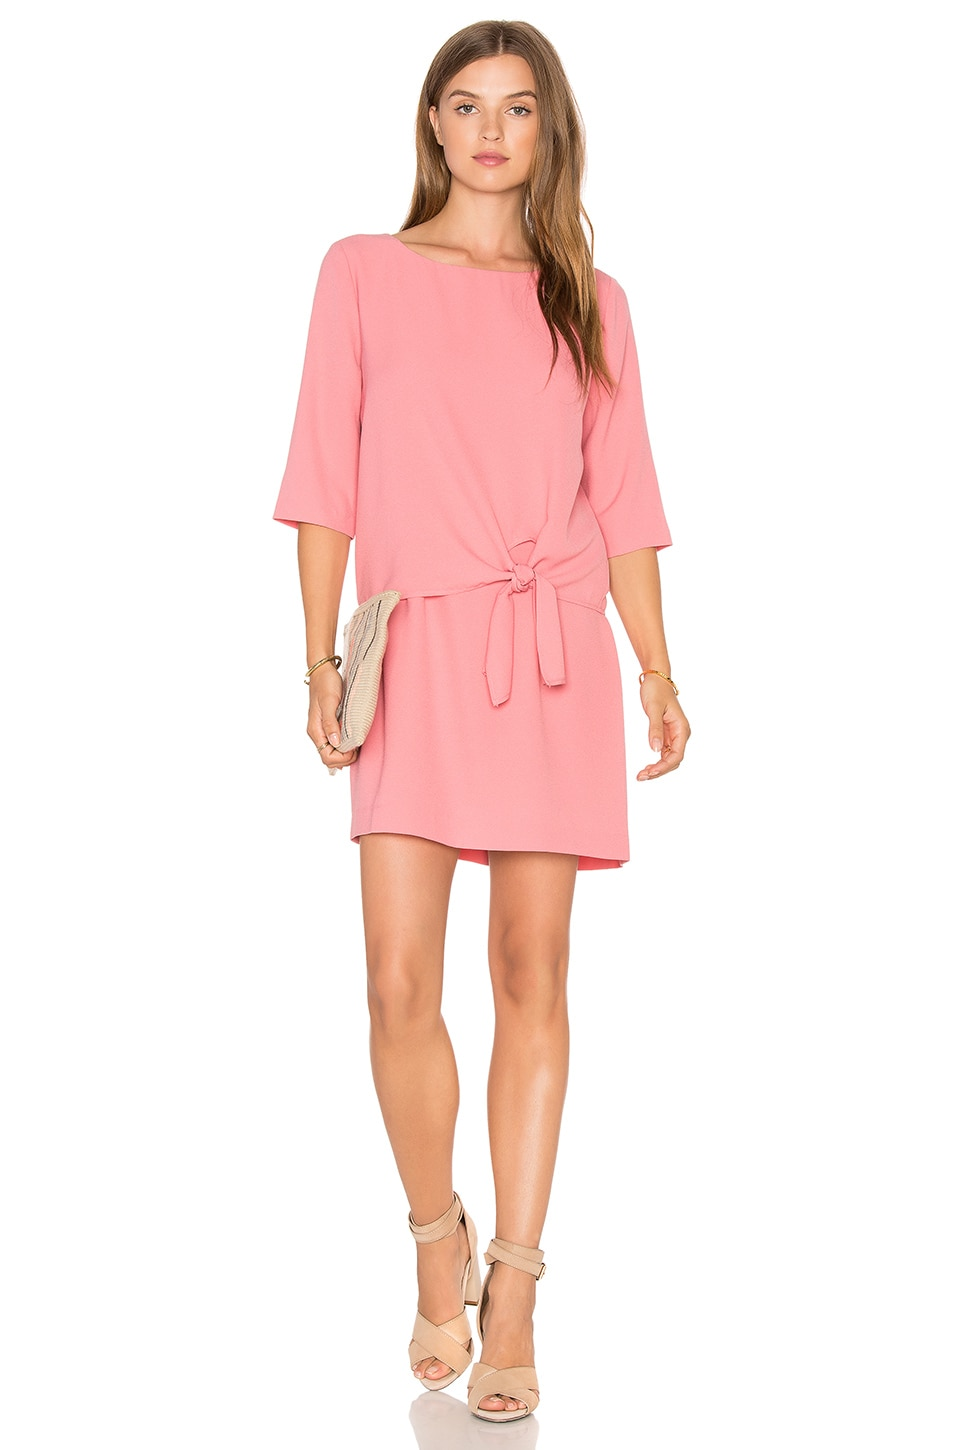 Tenley Dress by cupcakes and cashmere